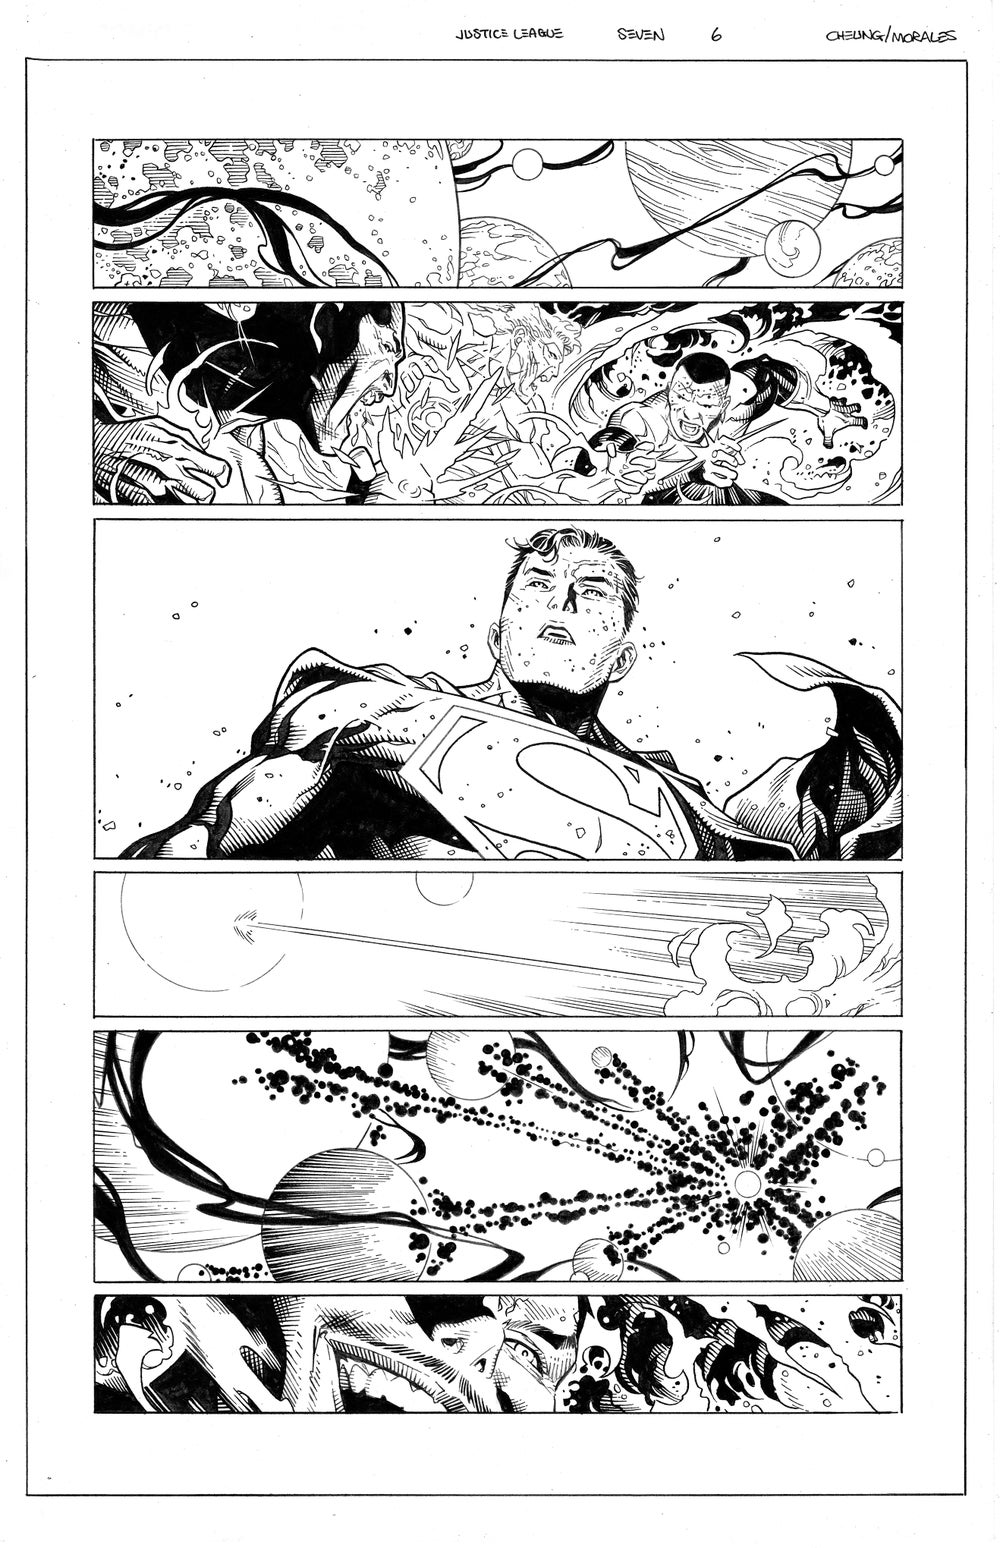 Image of JUSTICE LEAGUE #7 Page 06